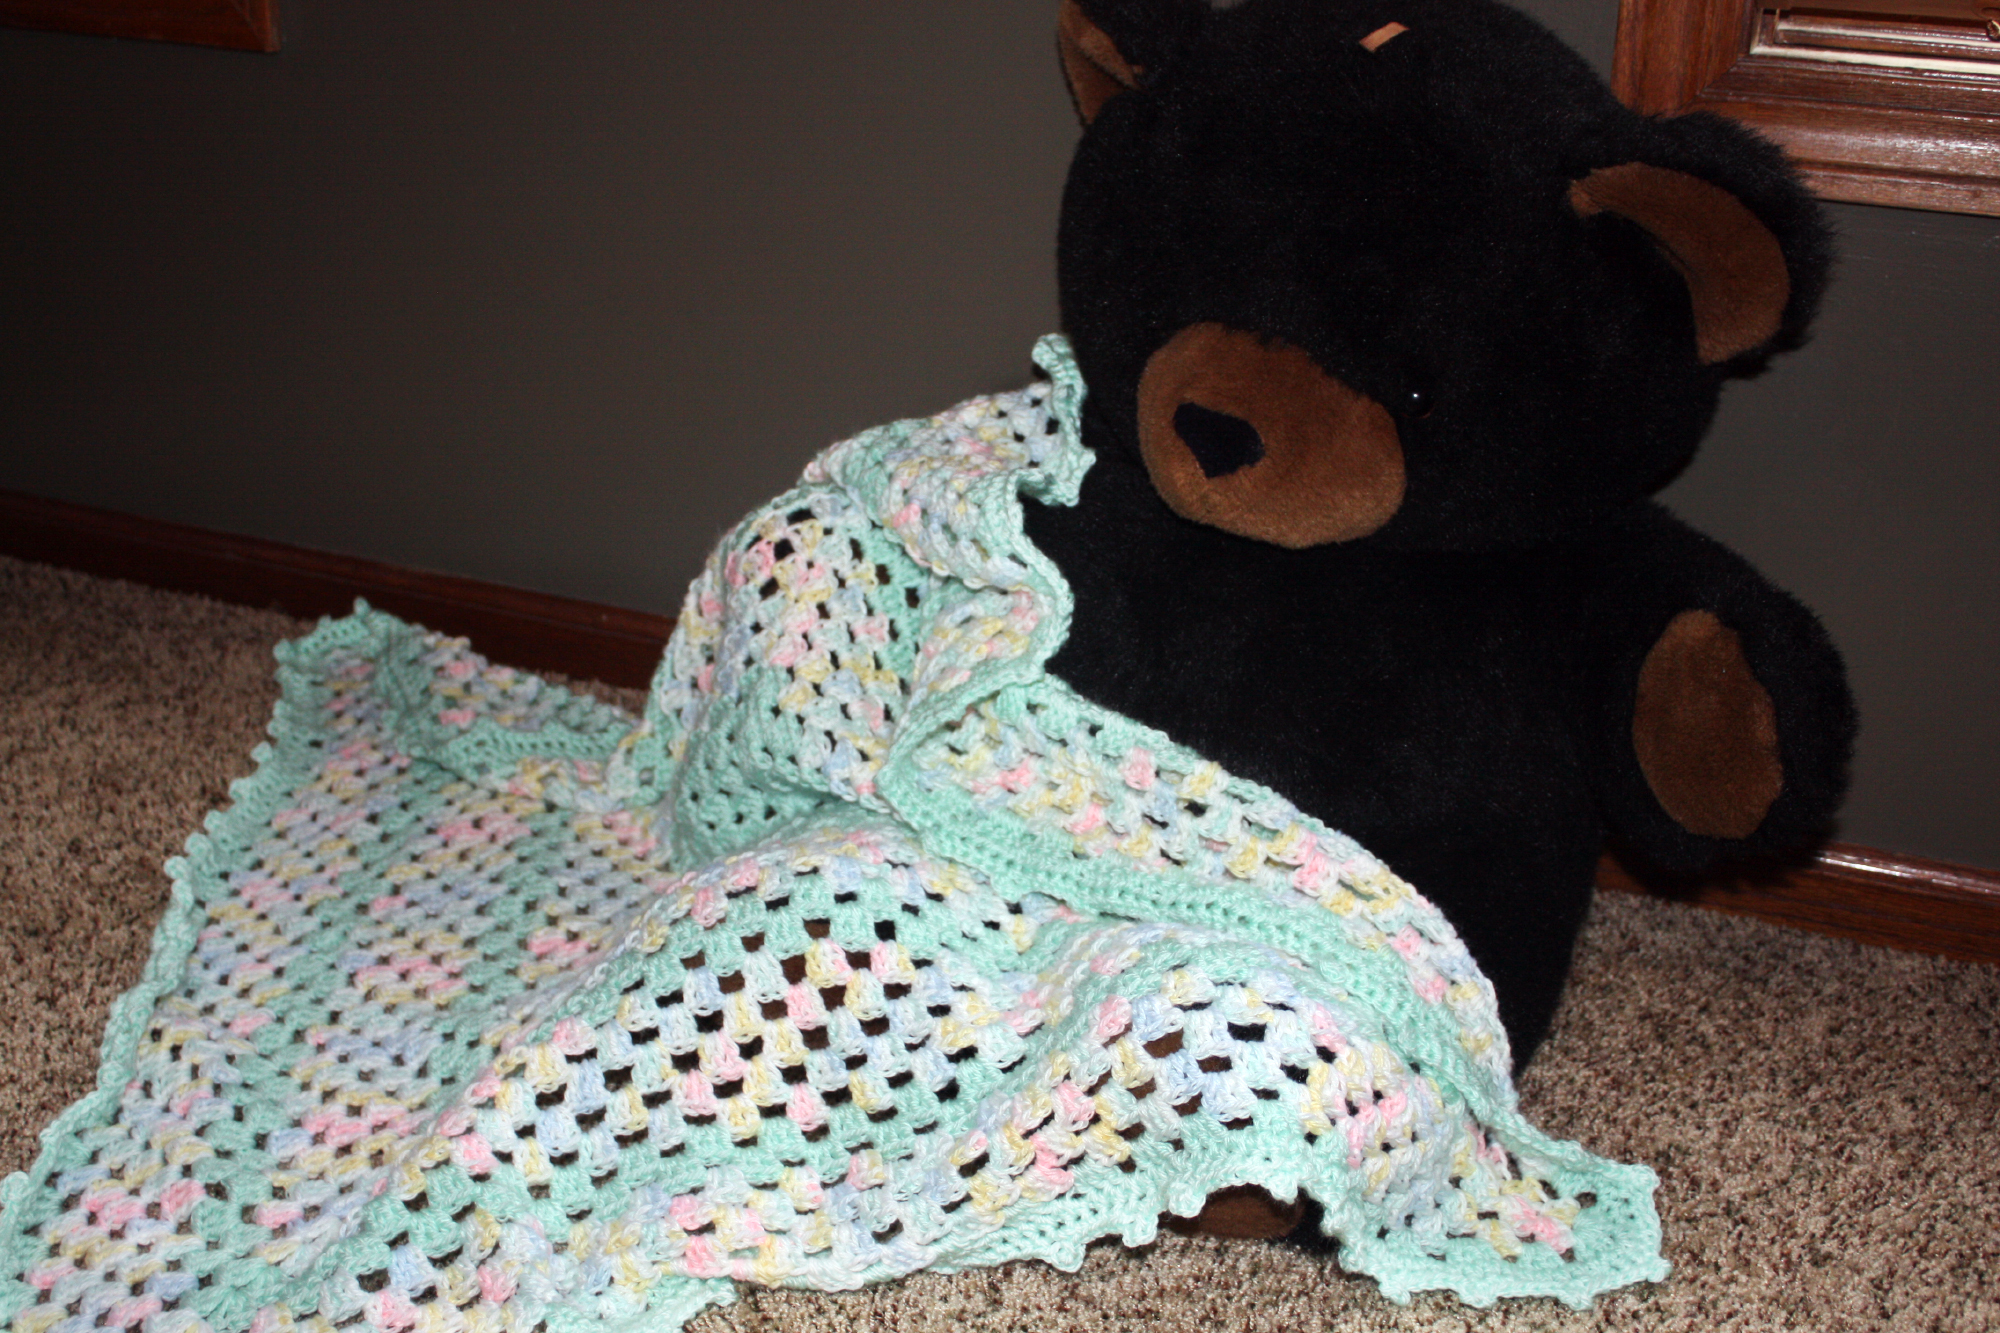 Crochet Blankets Archives - Stacy's Stitches